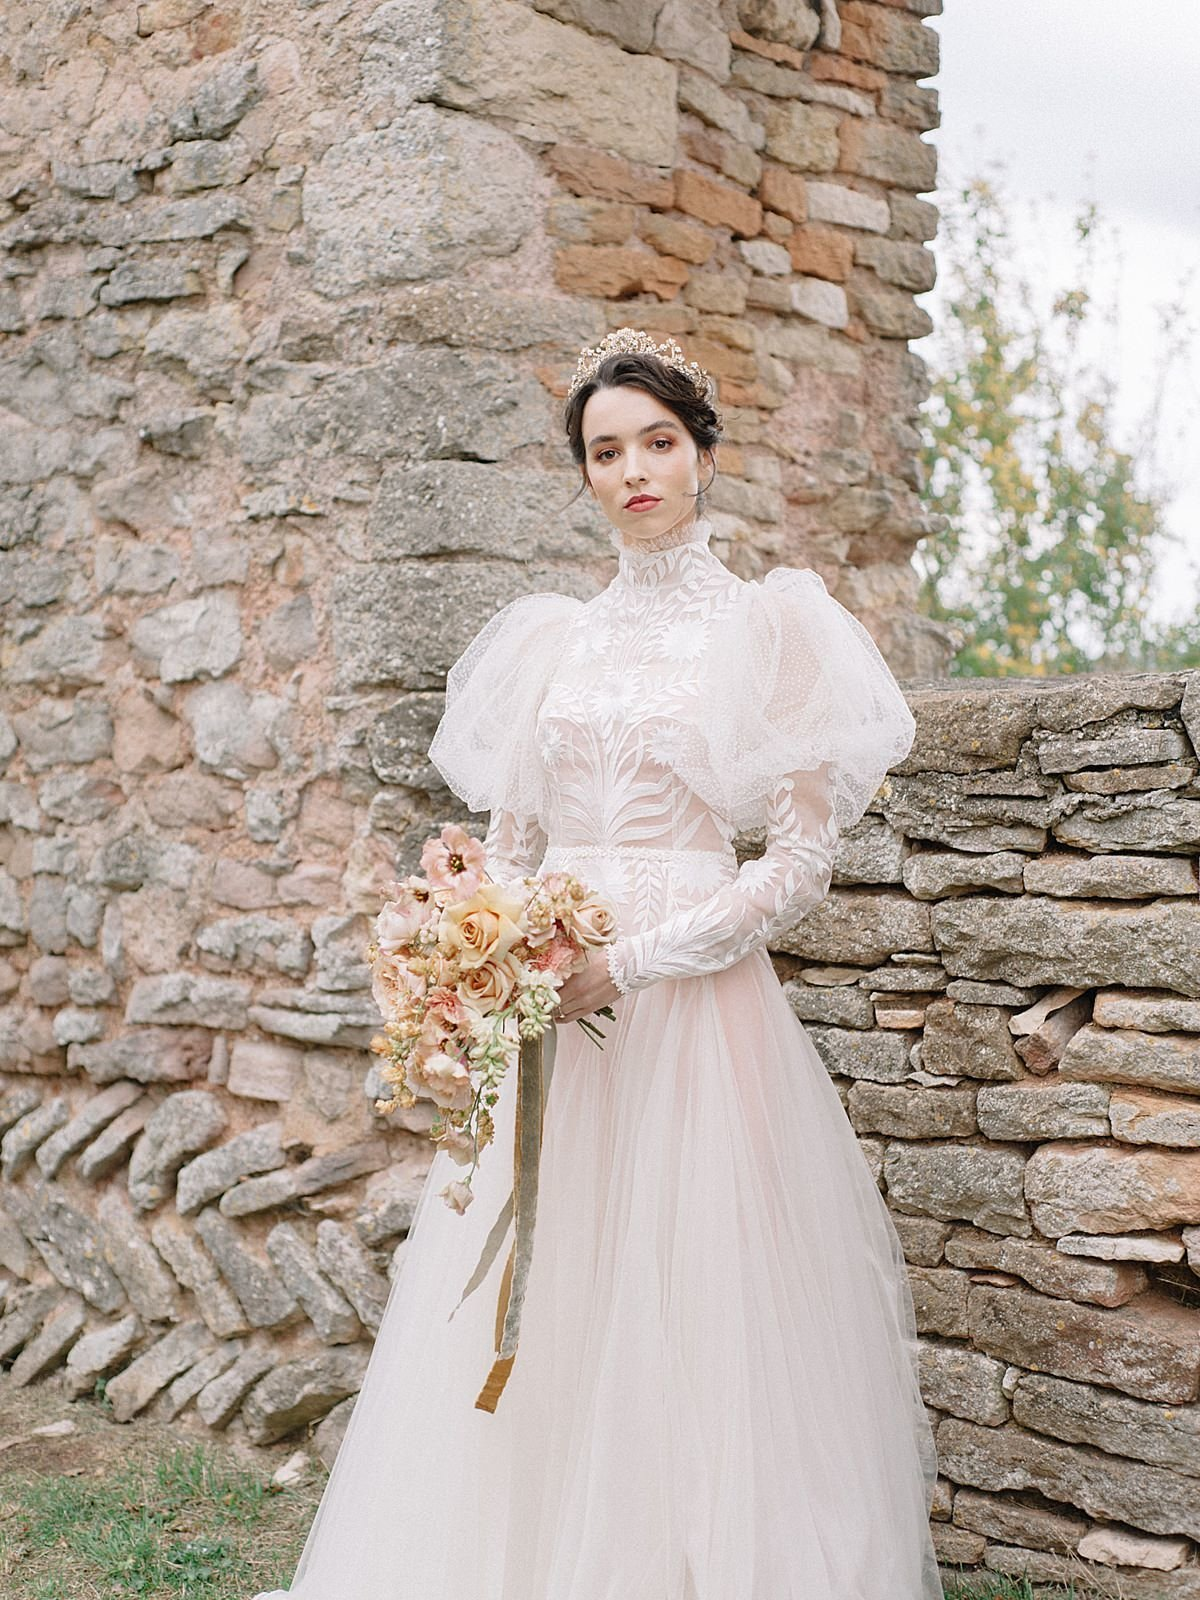 Helianthus-high-neck-puff-sleeve-wedding-dress-JoanneFlemingDesign-CelineChhuonPhoto (78)_WEB